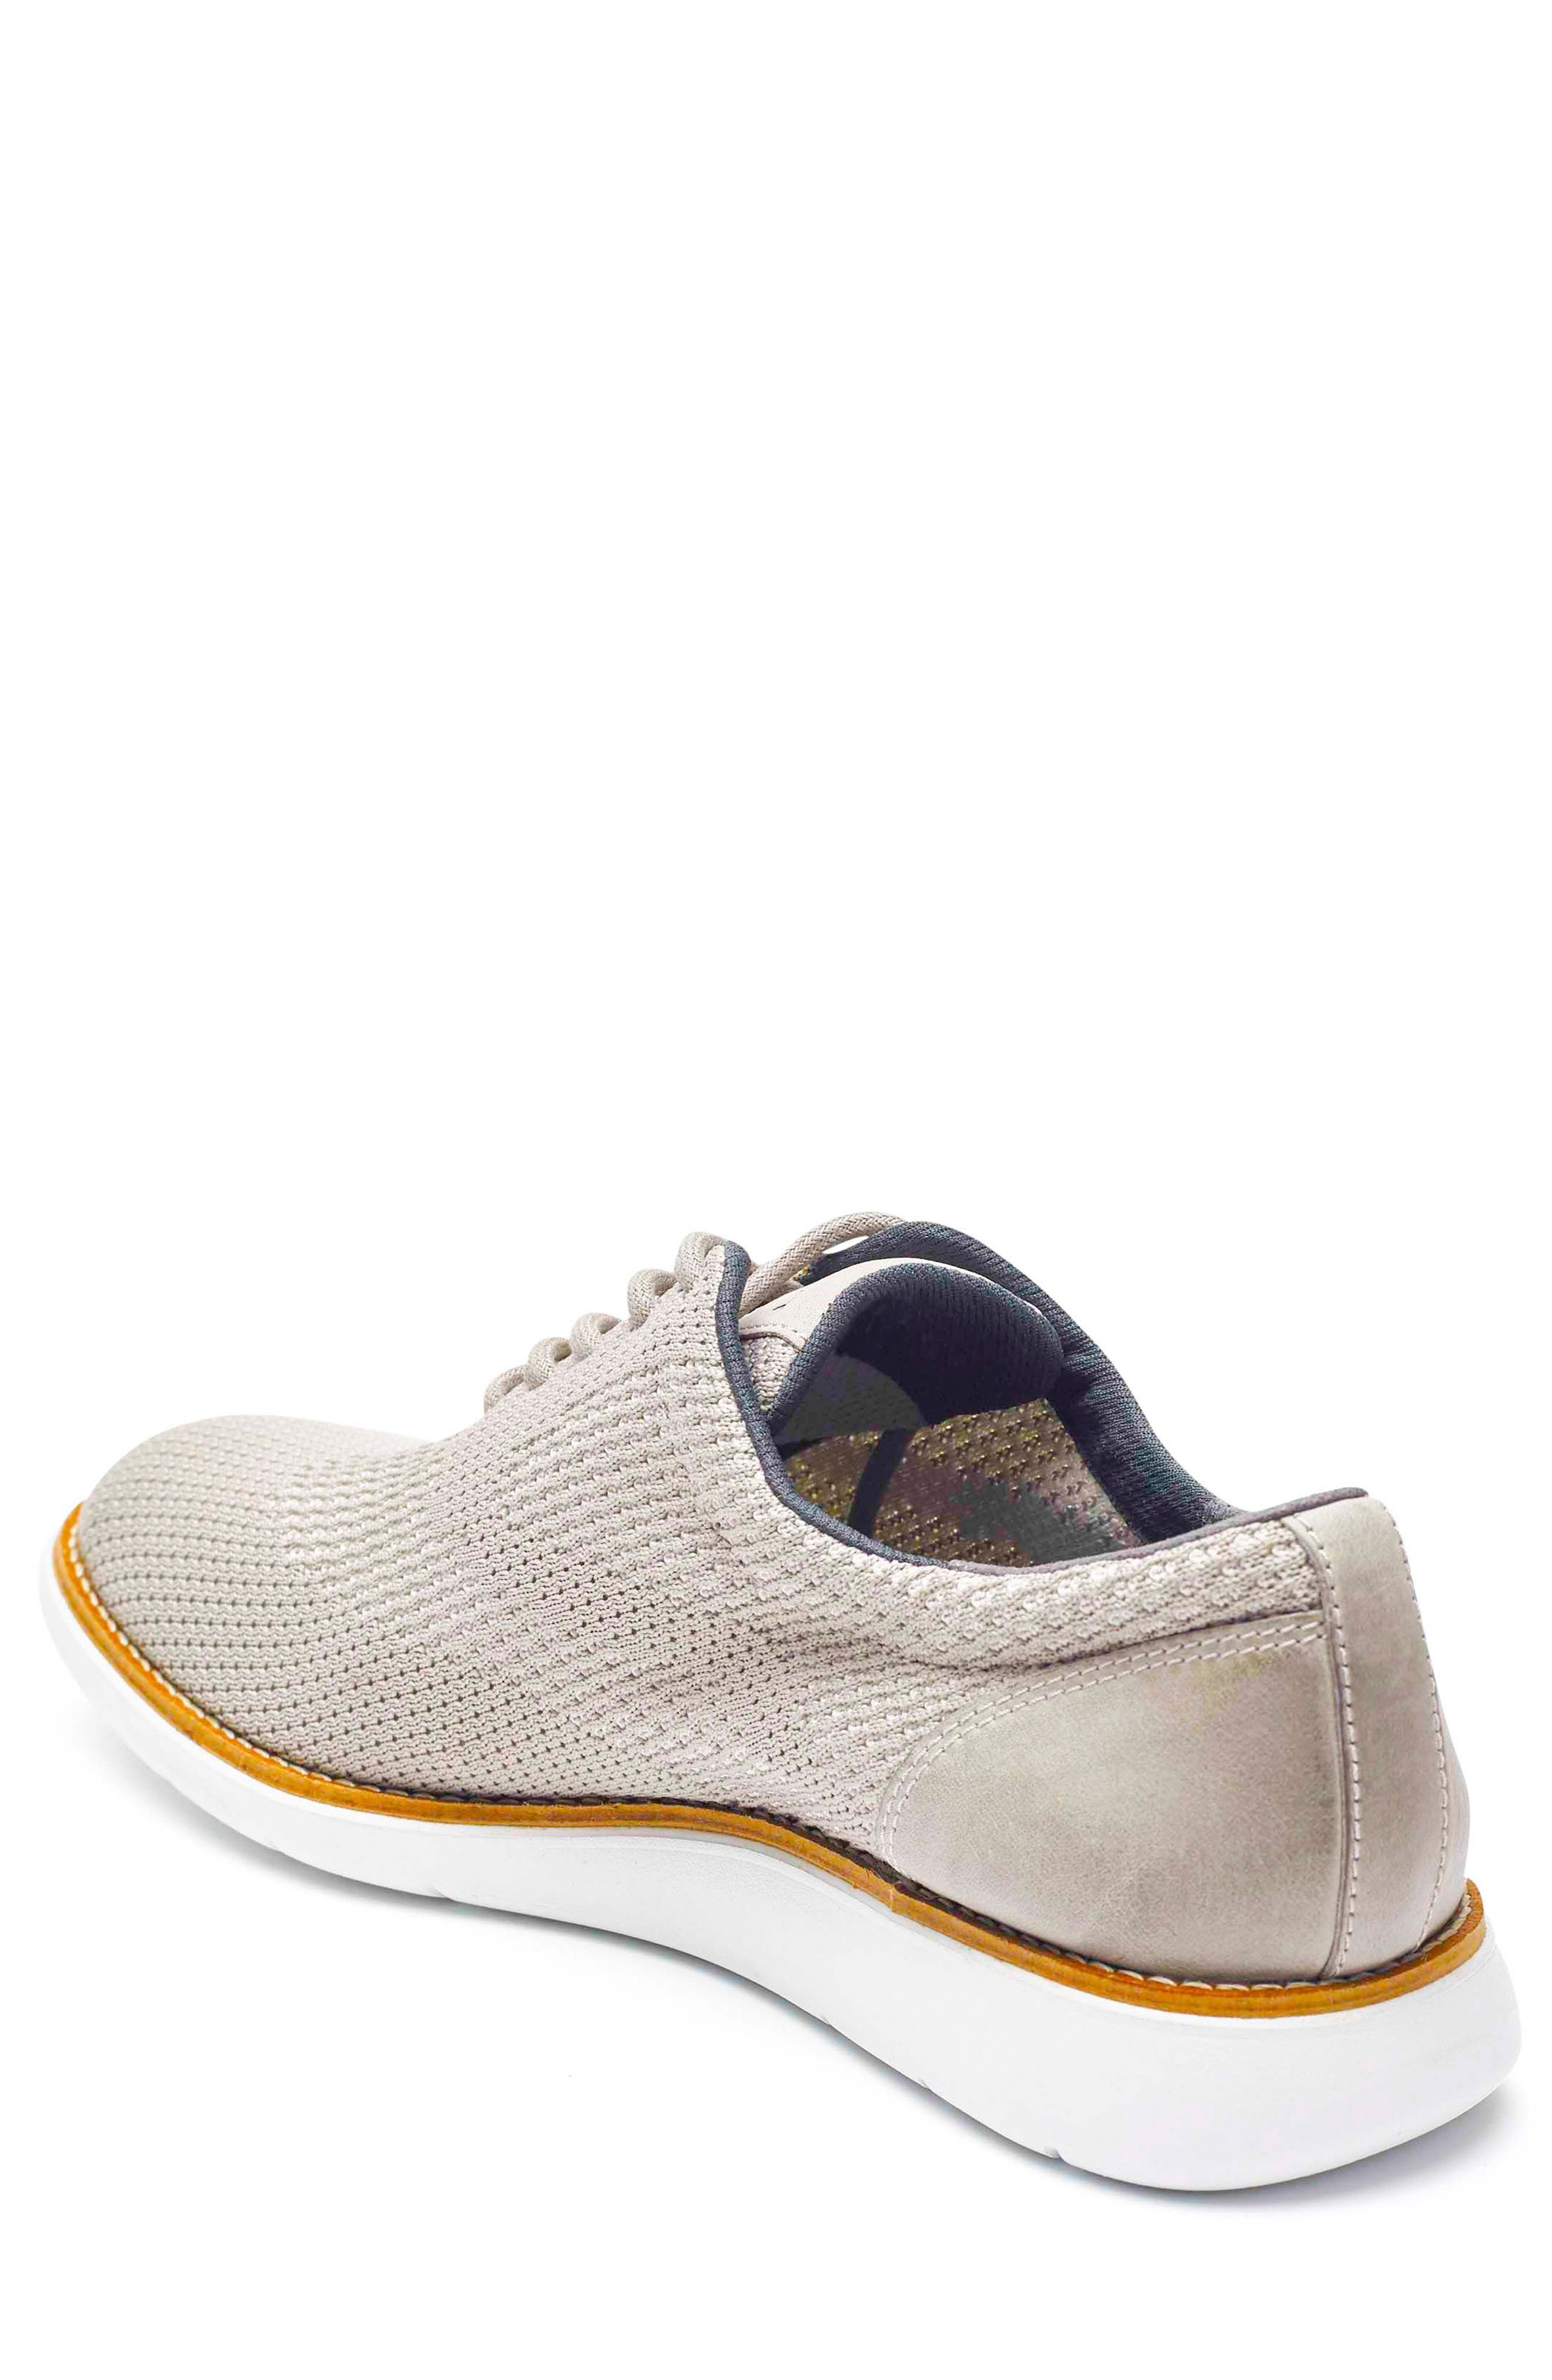 Total Motion Sport Oxford,                             Alternate thumbnail 2, color,                             ROCKSAND LEATHER